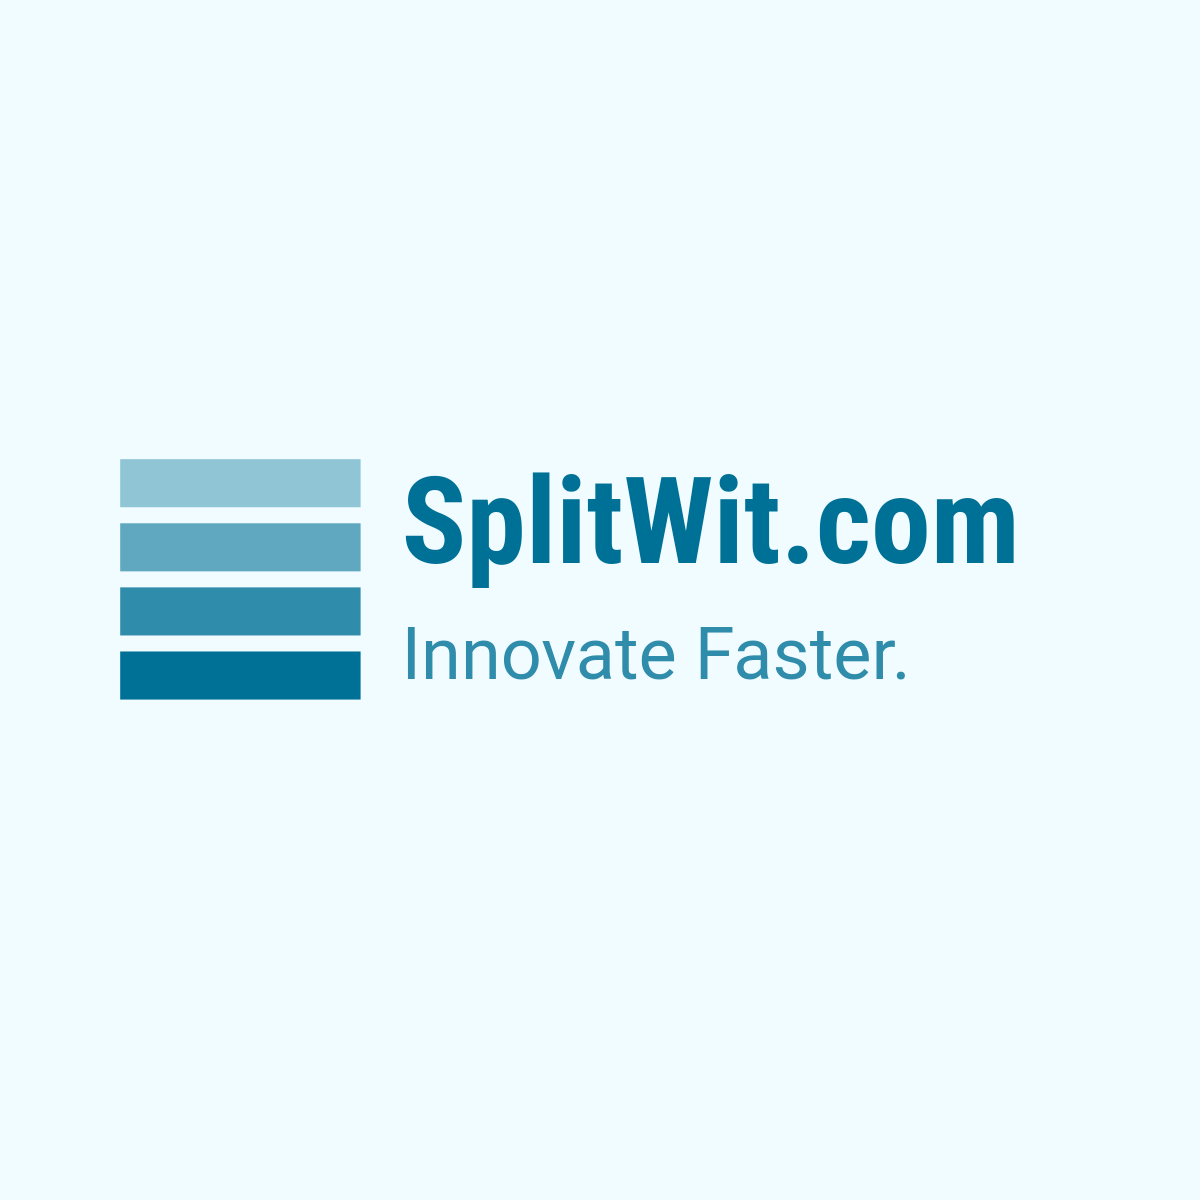 SplitWit marketing